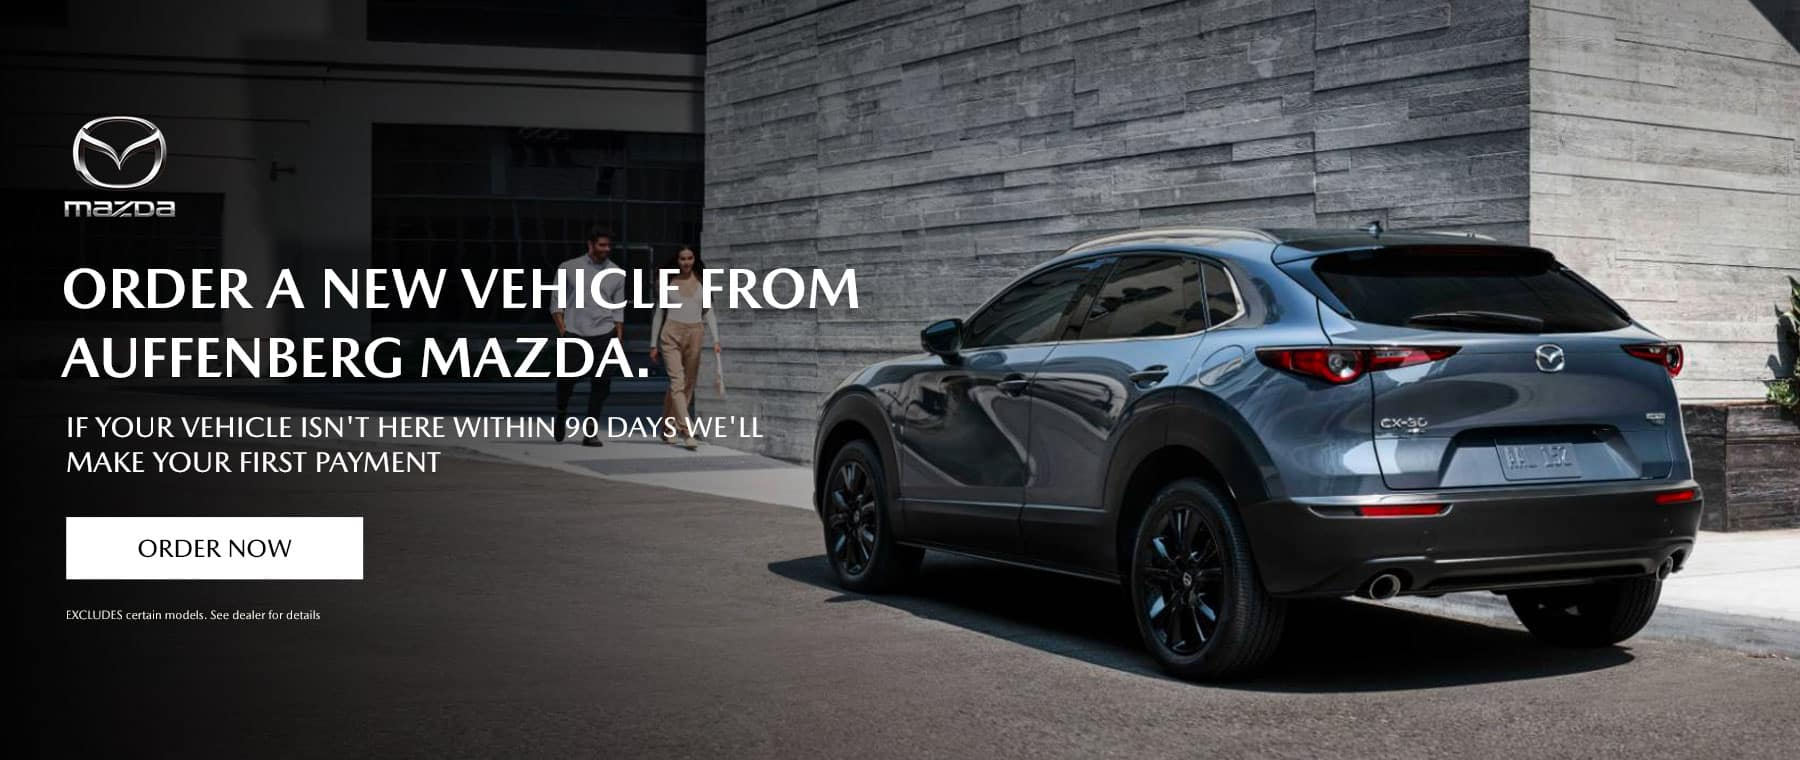 ORDER A NEW vehicle FROM AUFFENBERG MAZDA . IF YOUR VEHICLE ISN'T HERE WITHIN 90 DAYS WE'LL MAKE YOUR FIRST PAYMENT Disclaimer:EXCLUDES certain models. See dealer for details